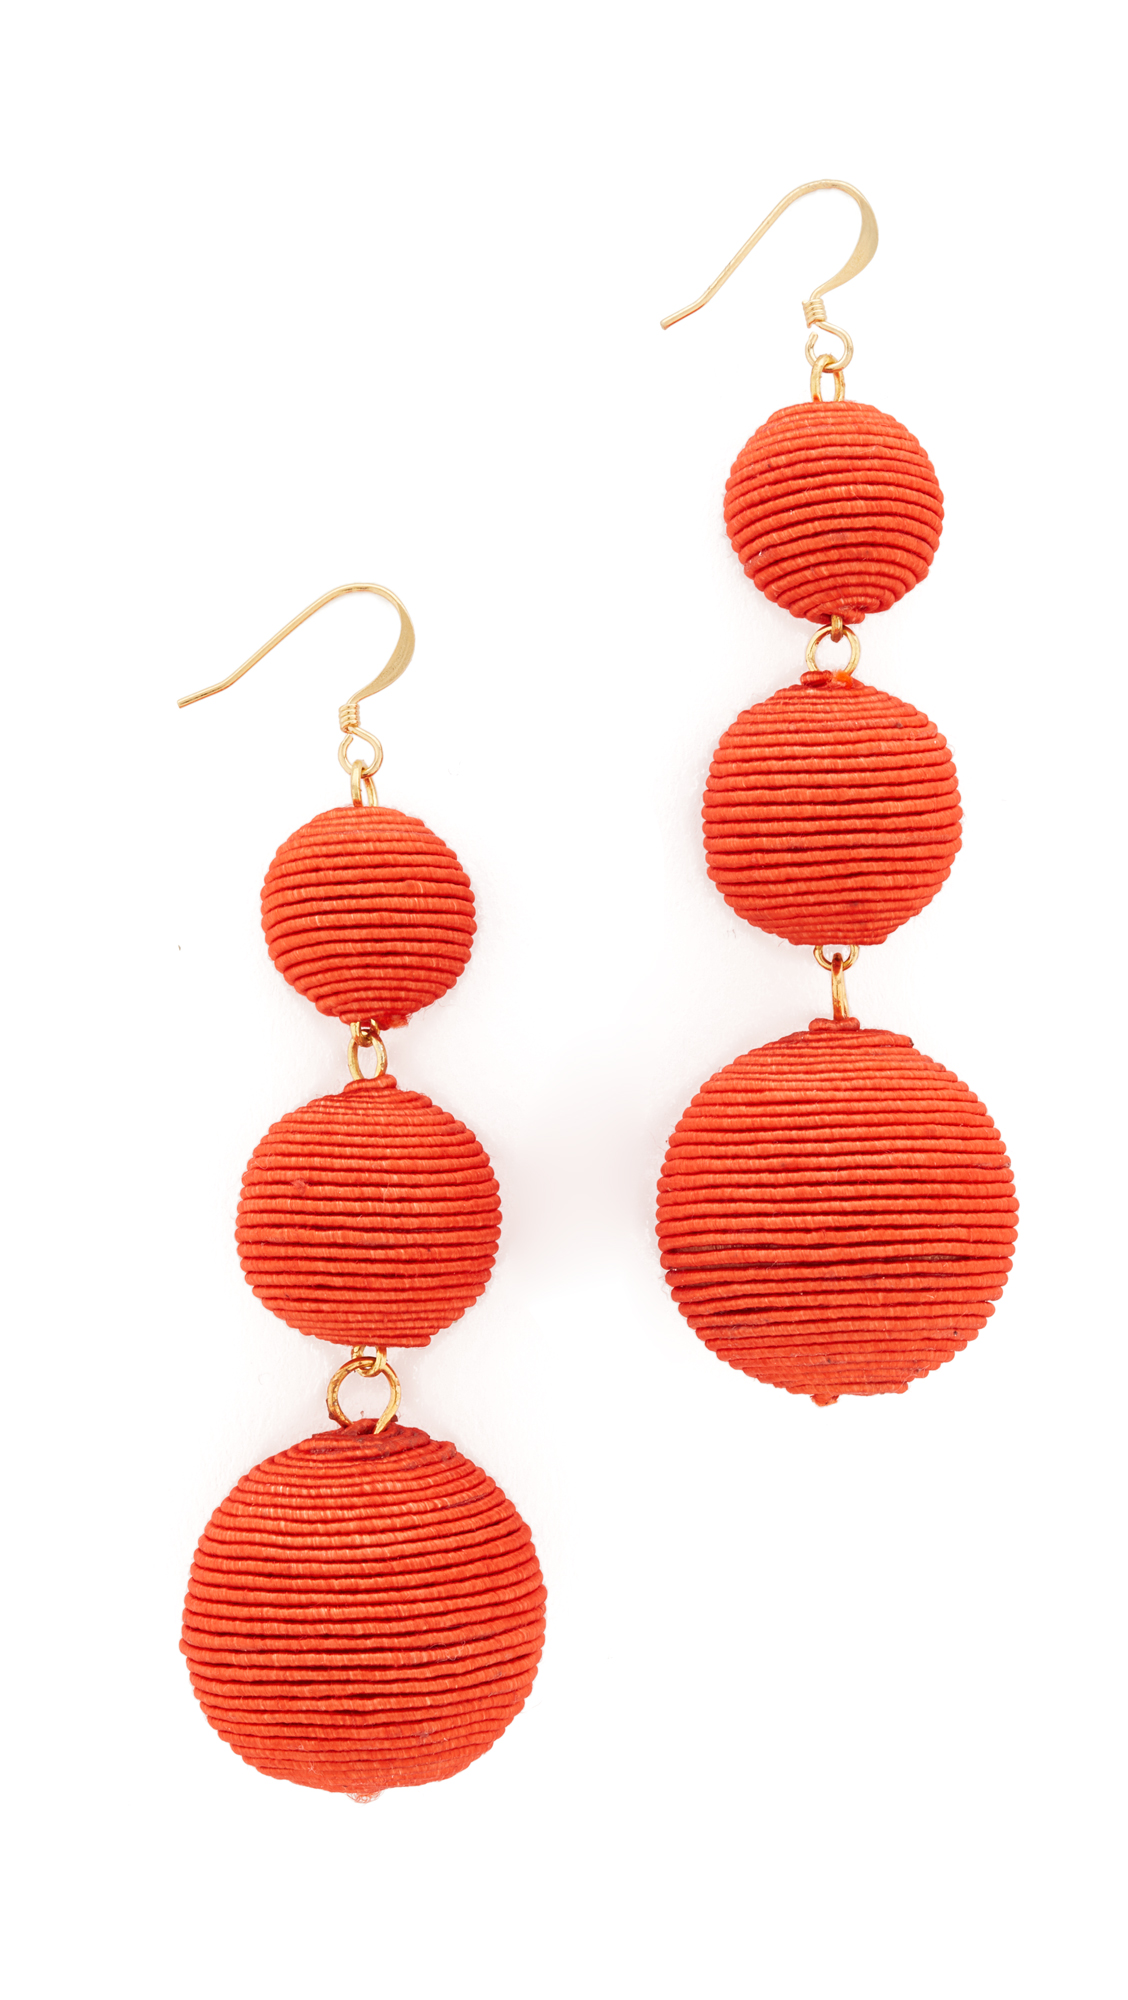 Kenneth Jay Lane Triple Tier Drop Earrings - Coral